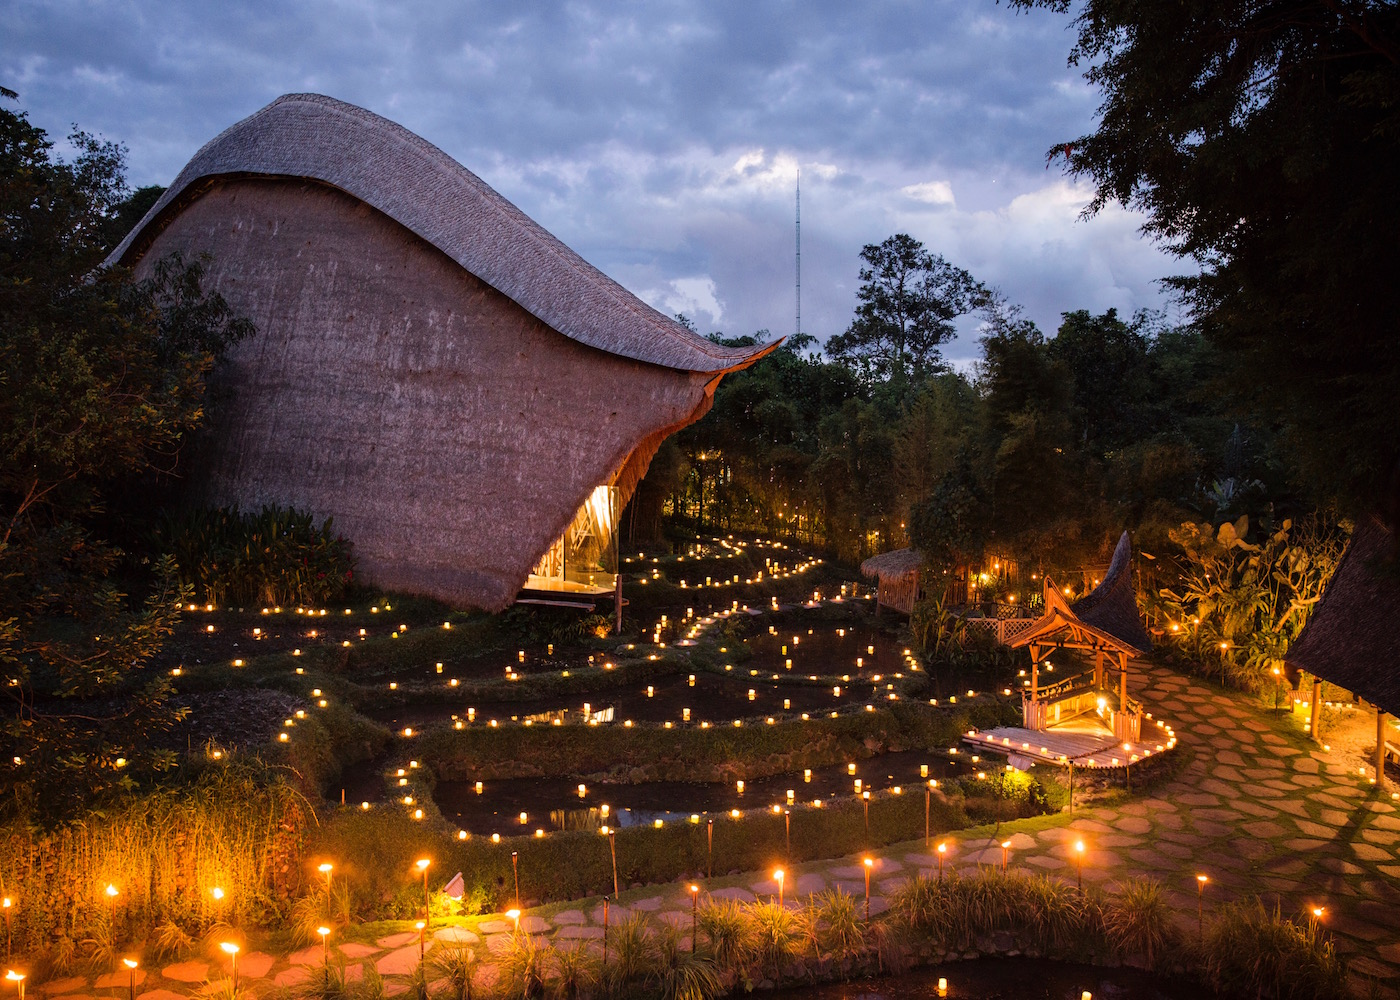 Floating over the rice fields, John Hardy's Kapal Bamboo Boutique in Ubud takes after the shape of a sailing boat